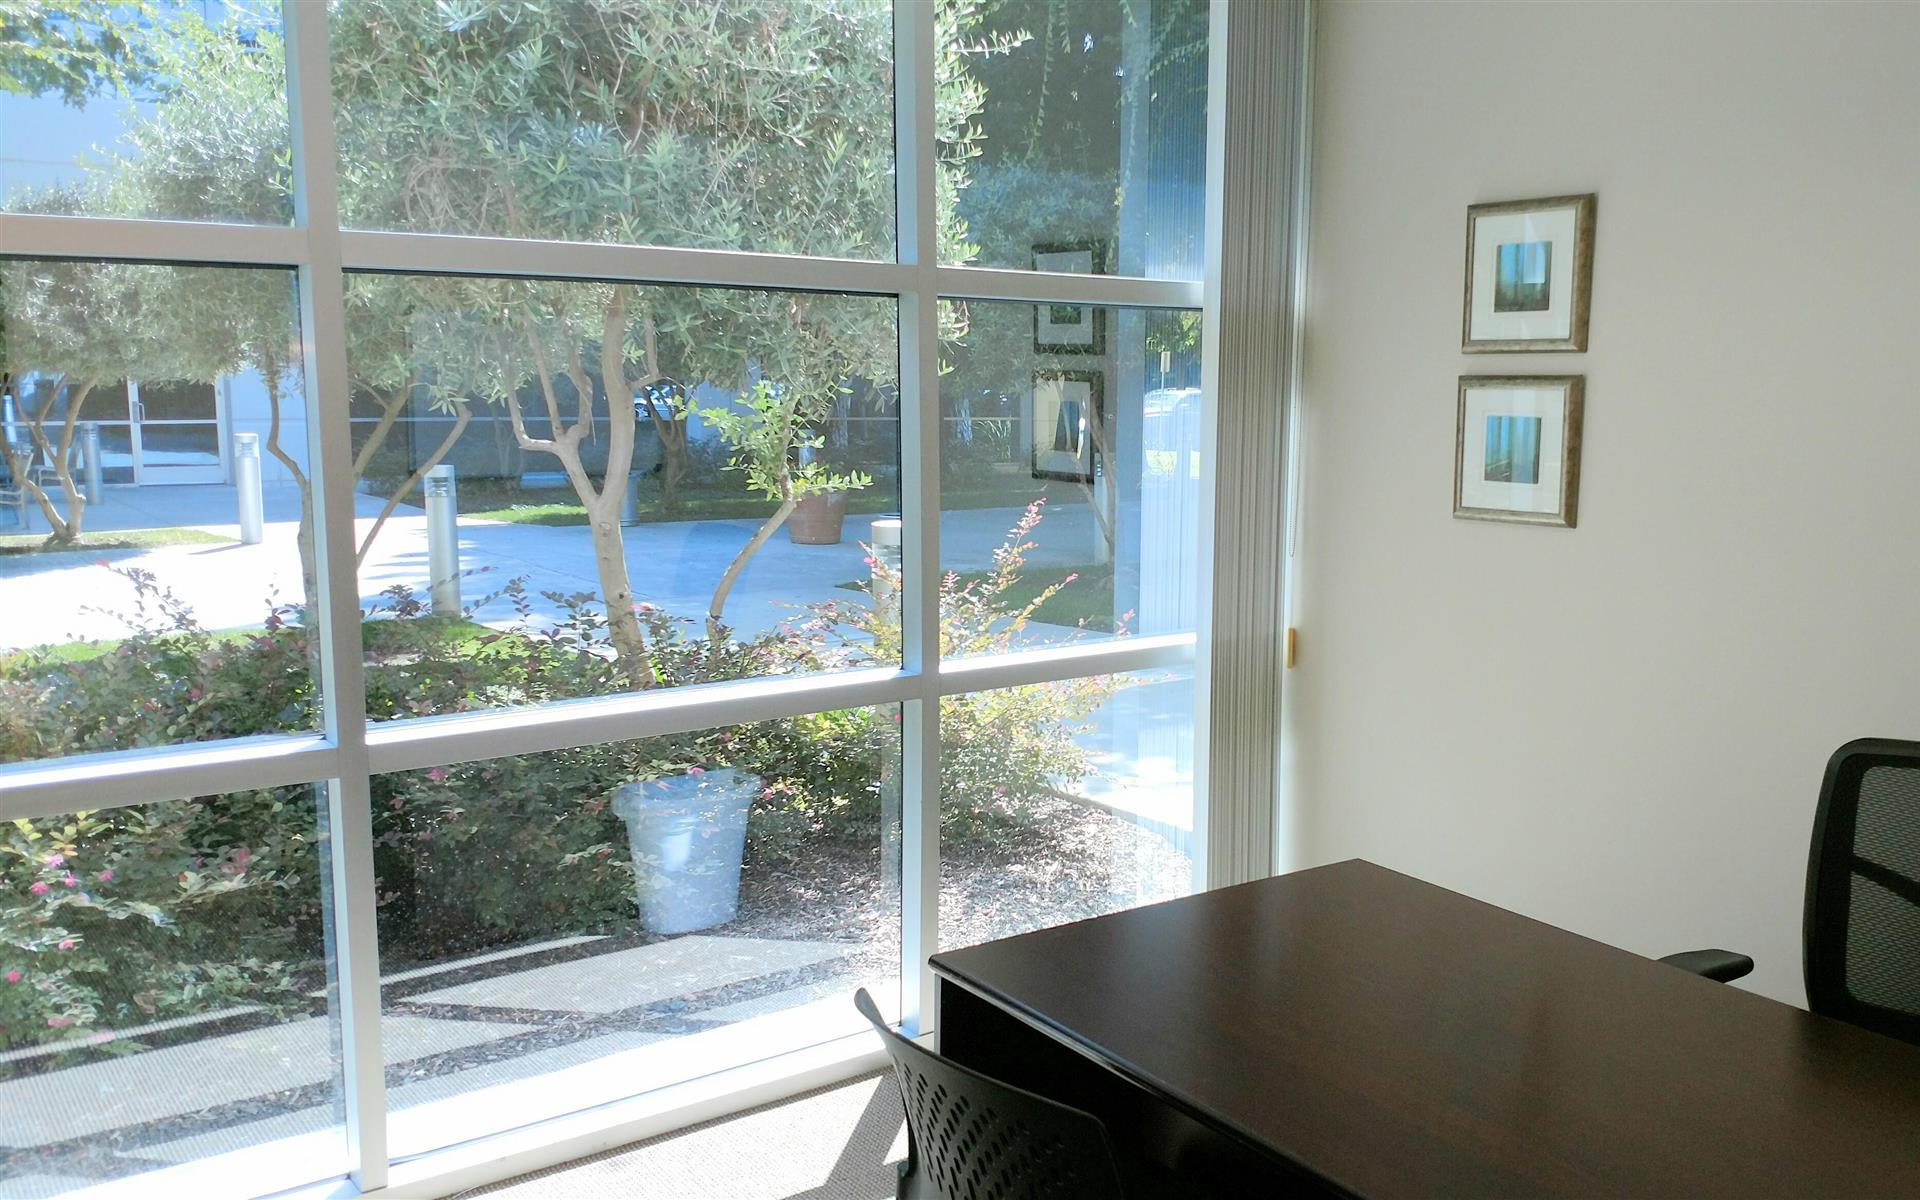 Focus Strategies - Suite 120 - Private Office 8 with a view